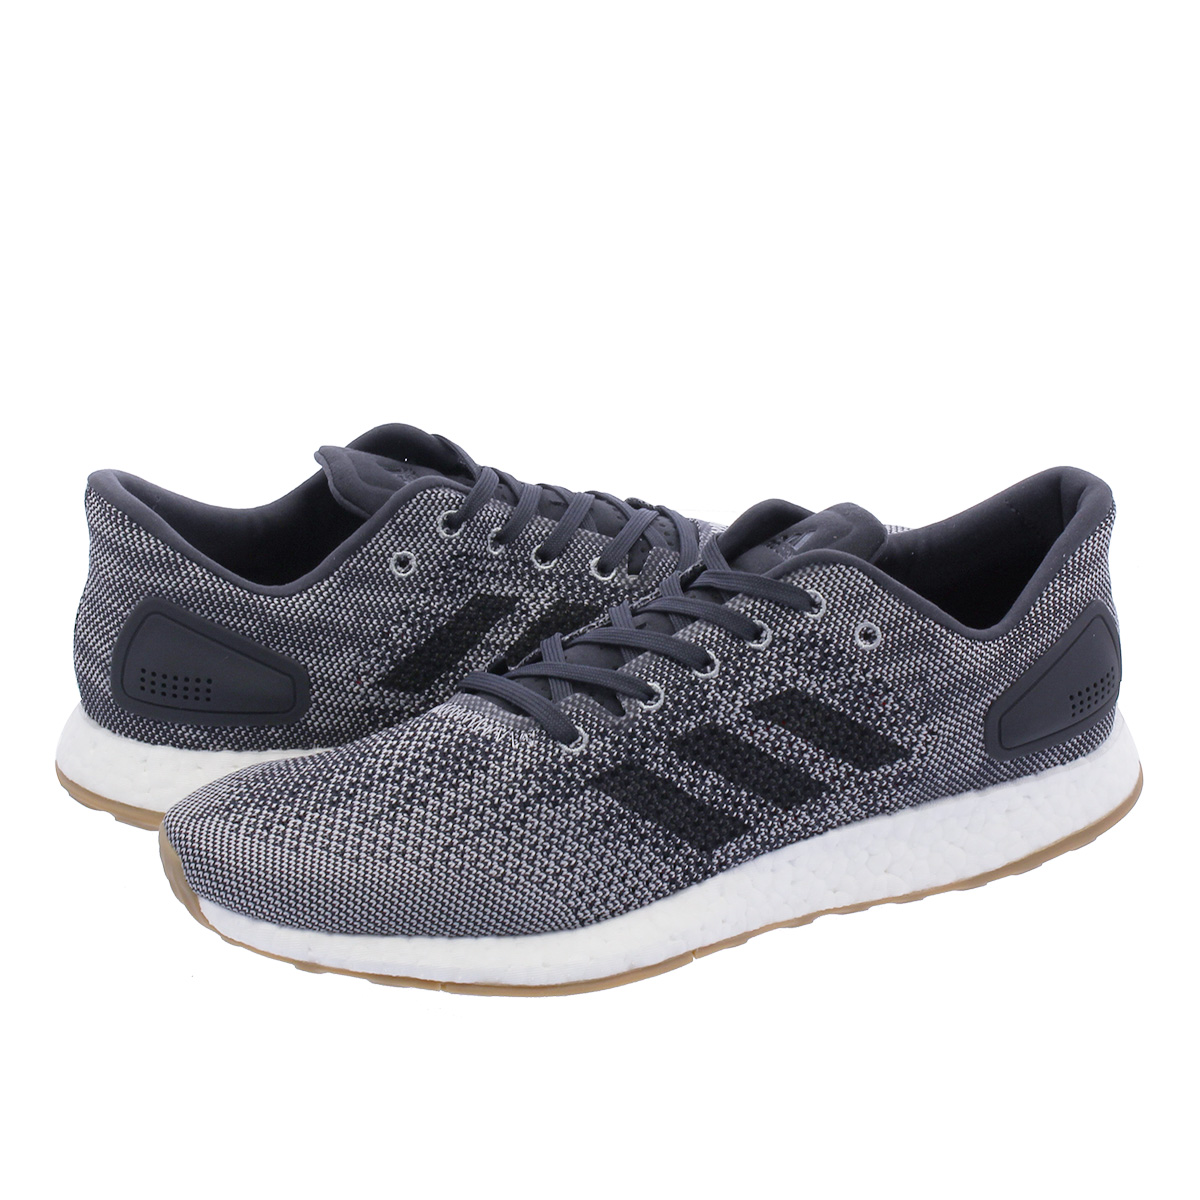 premium selection cea47 f02d3 adidas PureBOOST DPR Adidas pure boost DPR CARBON BLACK GREY